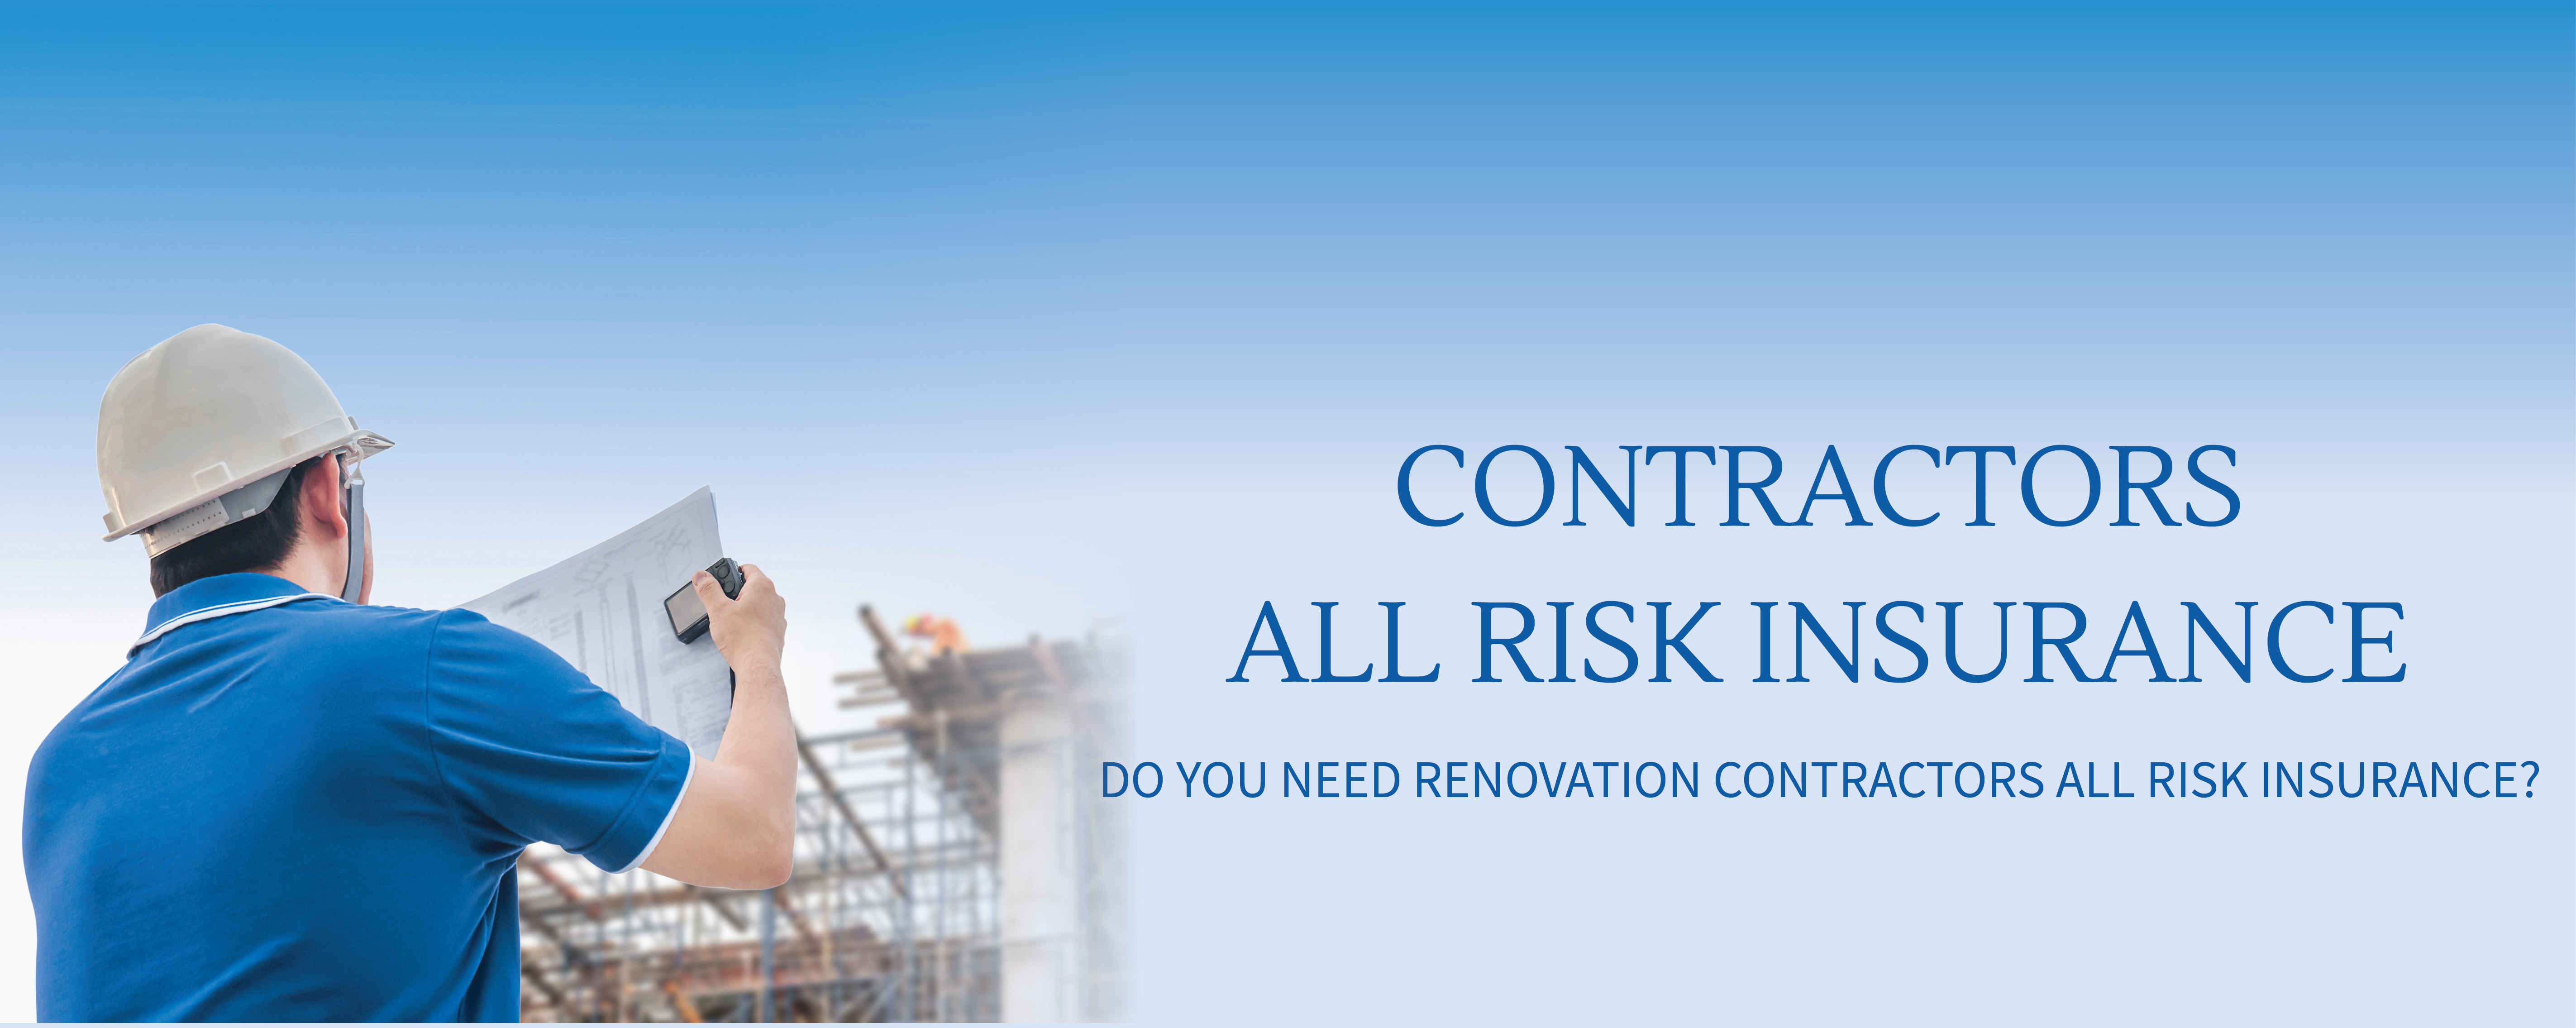 Do you need renovation contractors all risk insurance?